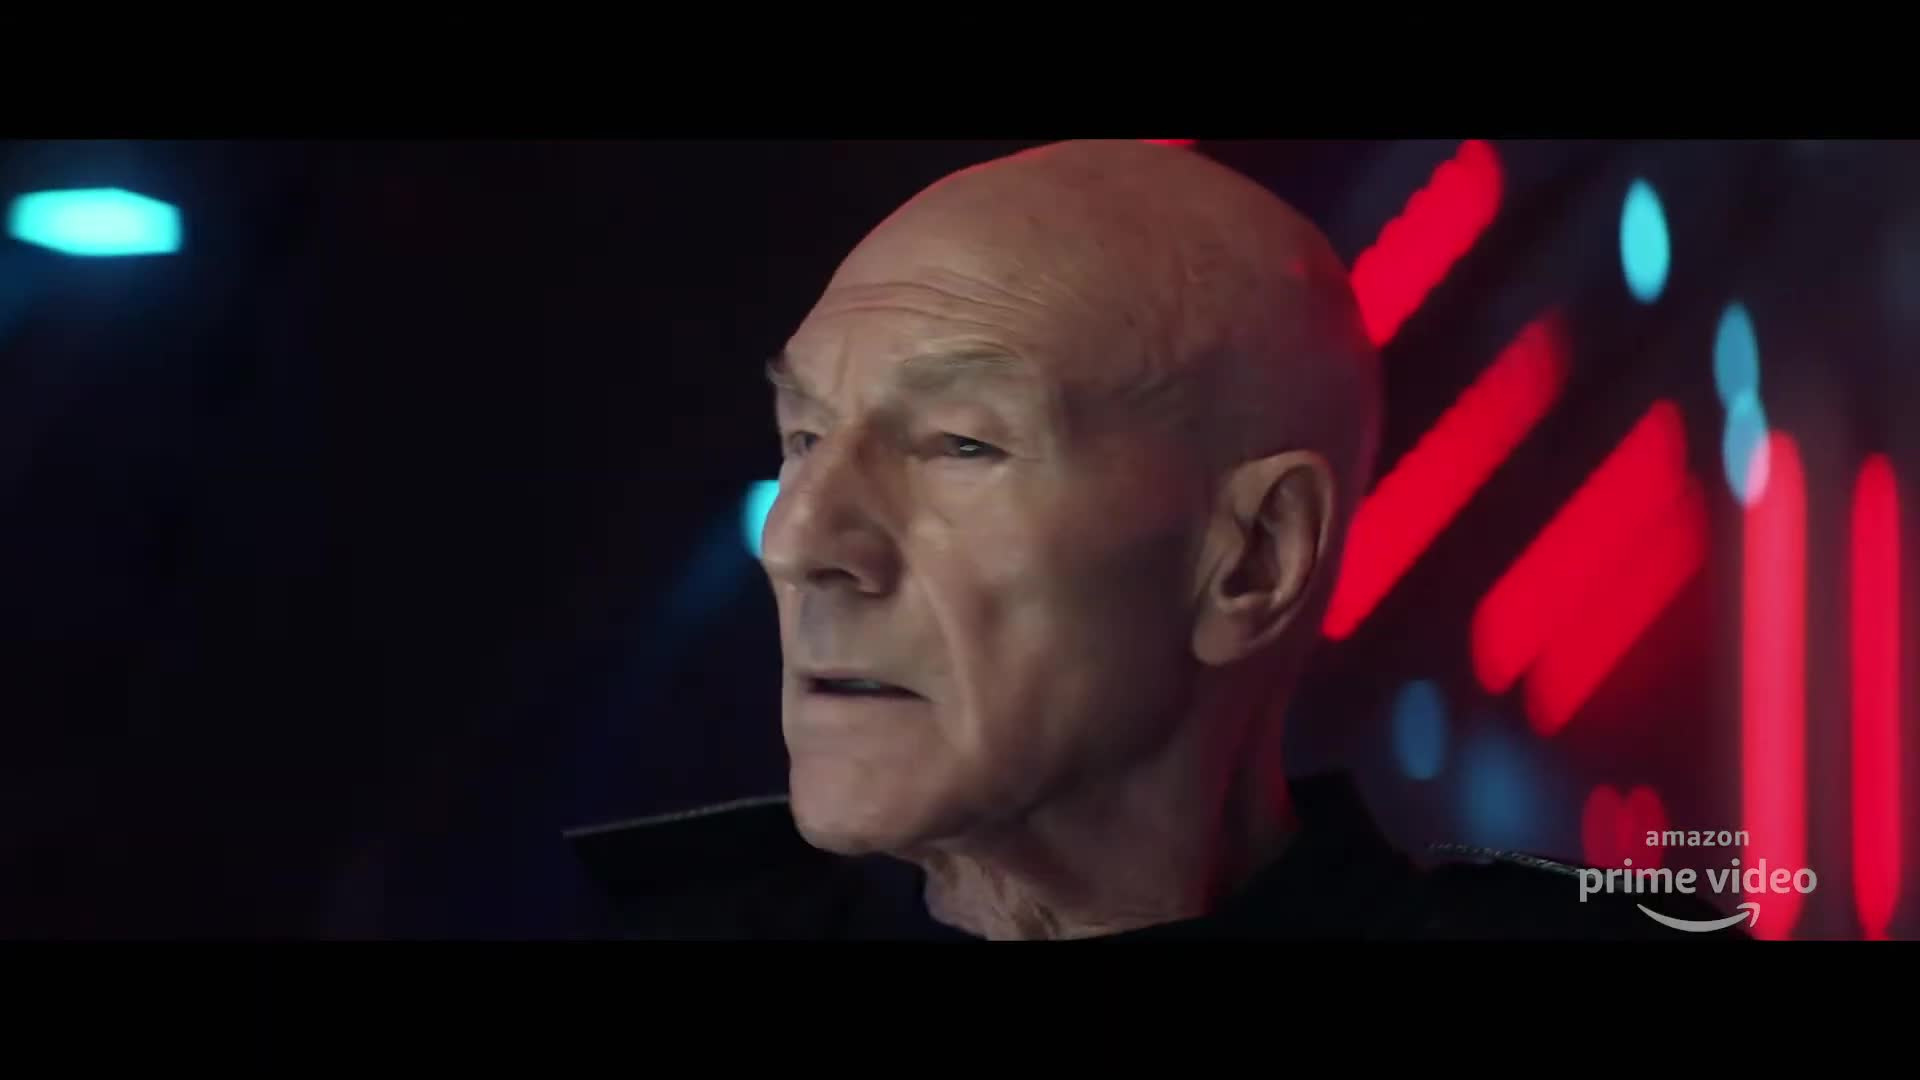 Trailer, Amazon, Serie, Amazon Prime, Amazon Prime Video, Teaser, Star Trek, Prime Video, Jean Luc Picard, Picard, Star Trek Picard, Star Trek:Picard, Star Trek: Picard